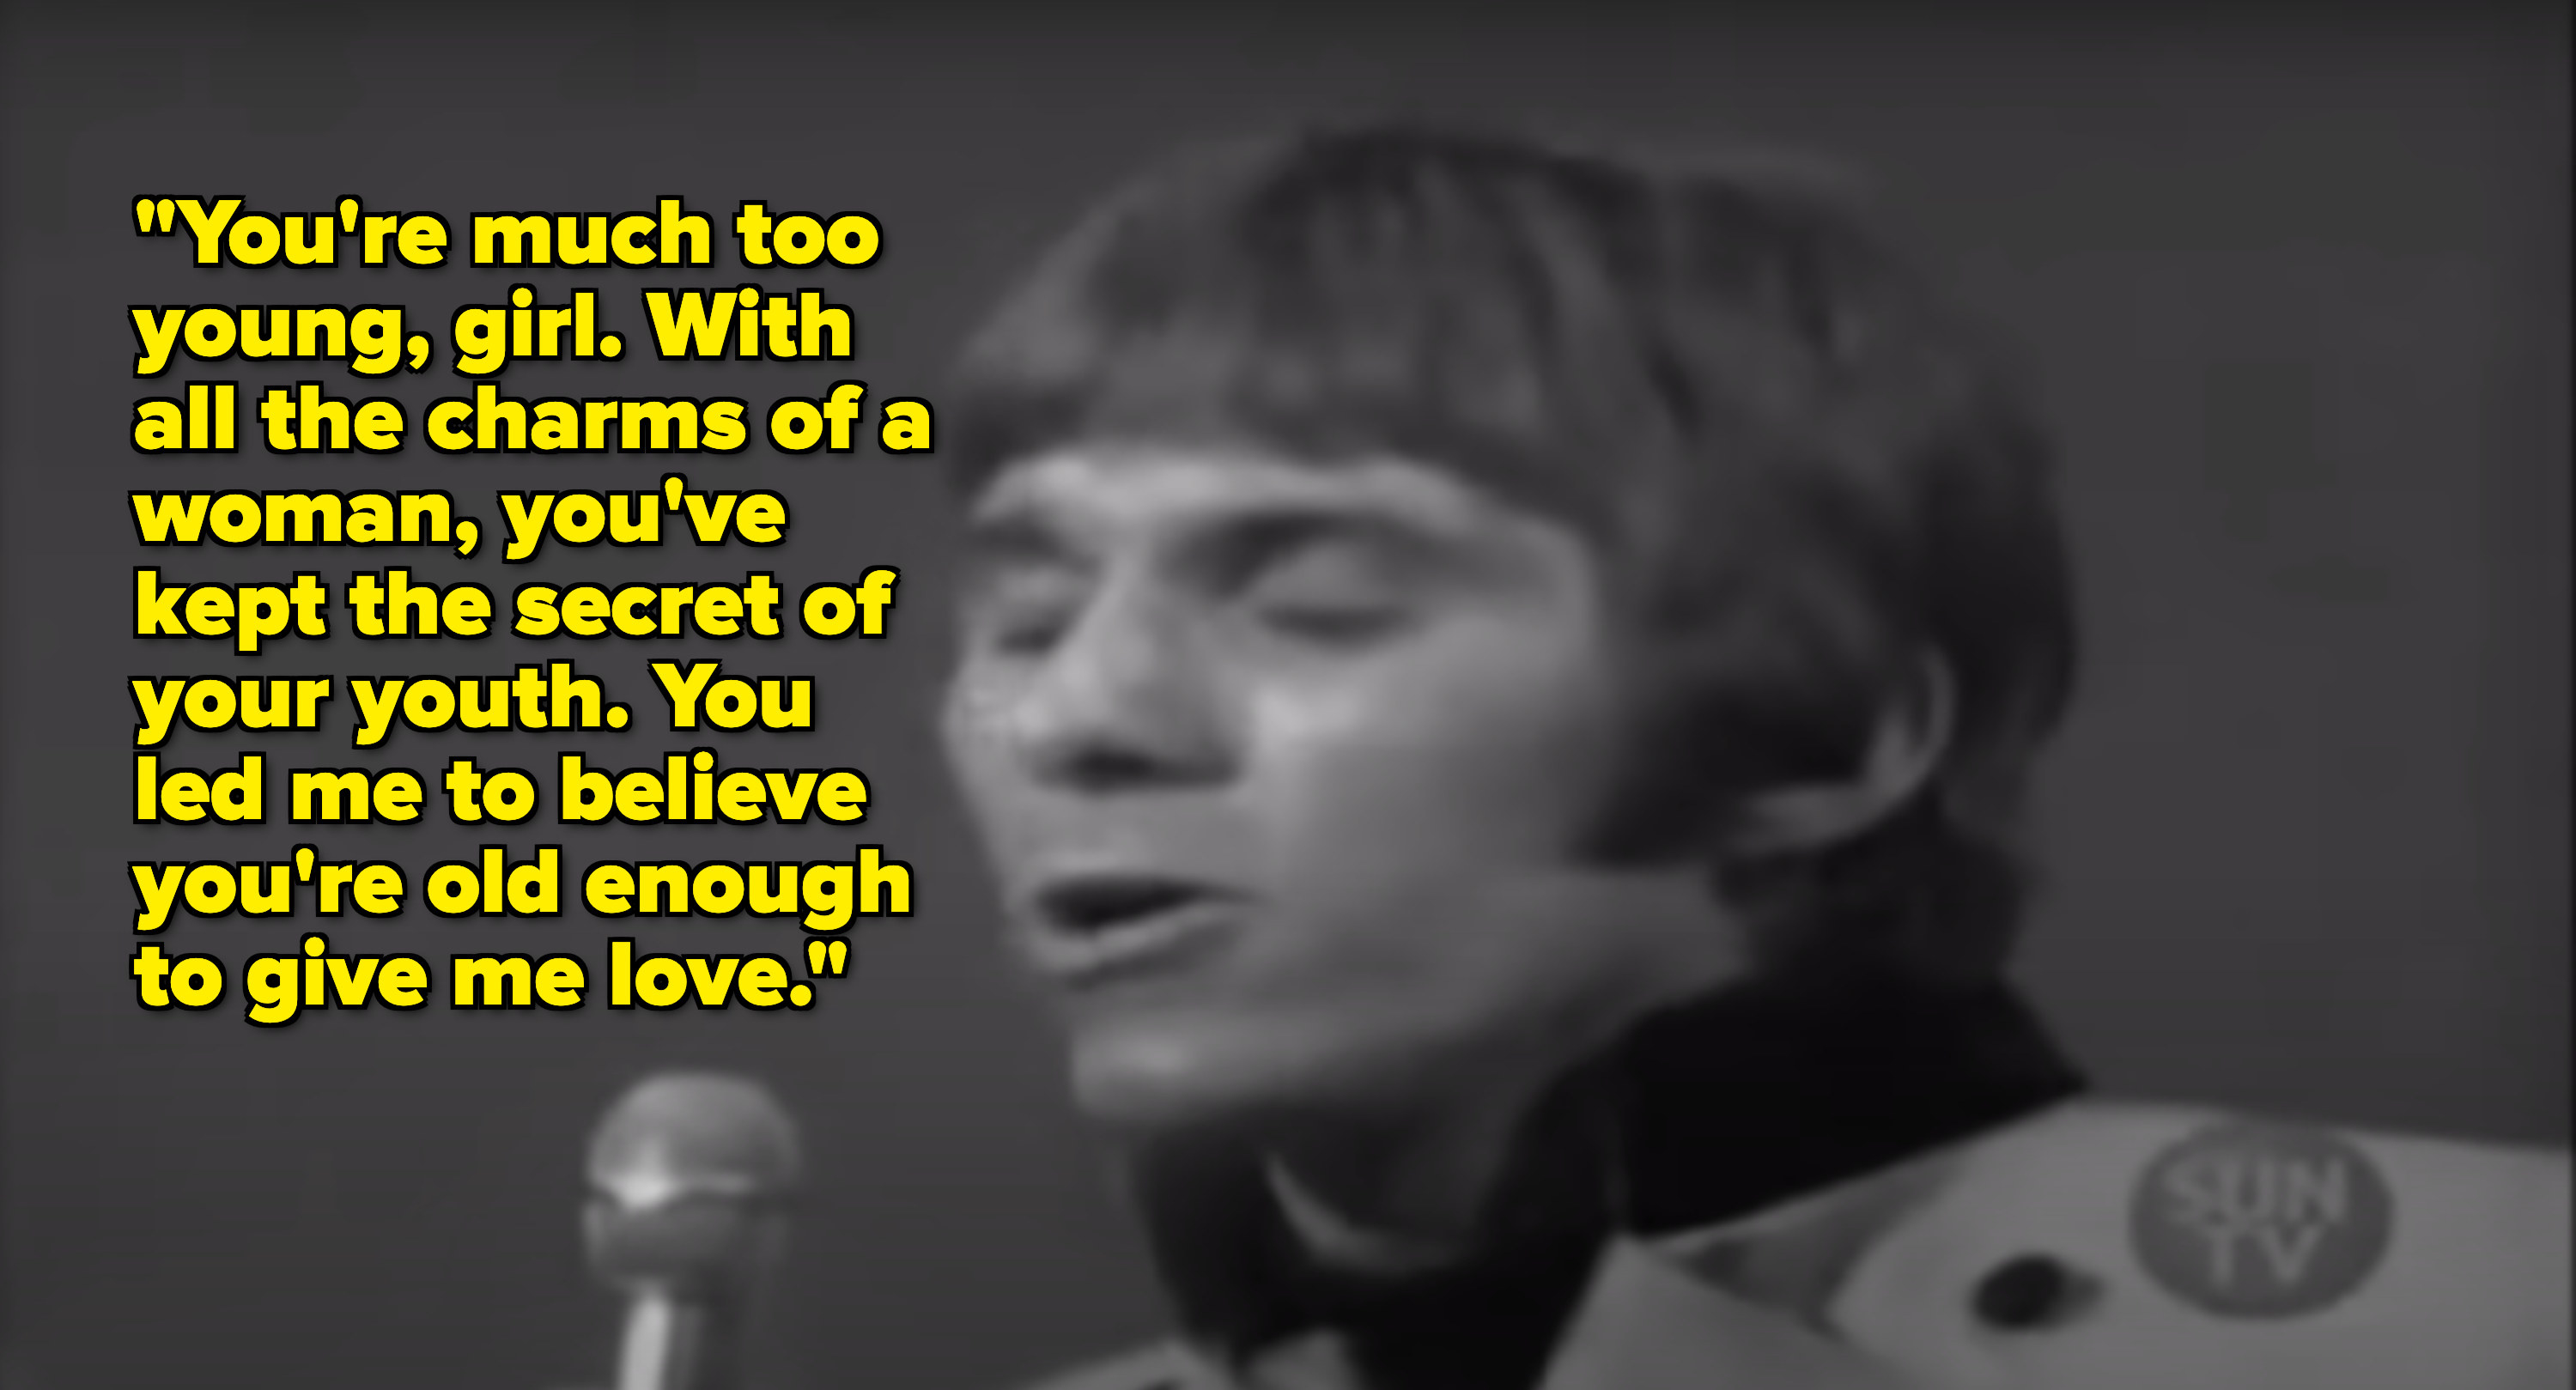 """Black-and-white image of a man singing with the lyric """"You're much too young, girl. With all the charms of a woman, you've kept the secret of. your youth. You led me to believe you're old enough to give me love"""""""